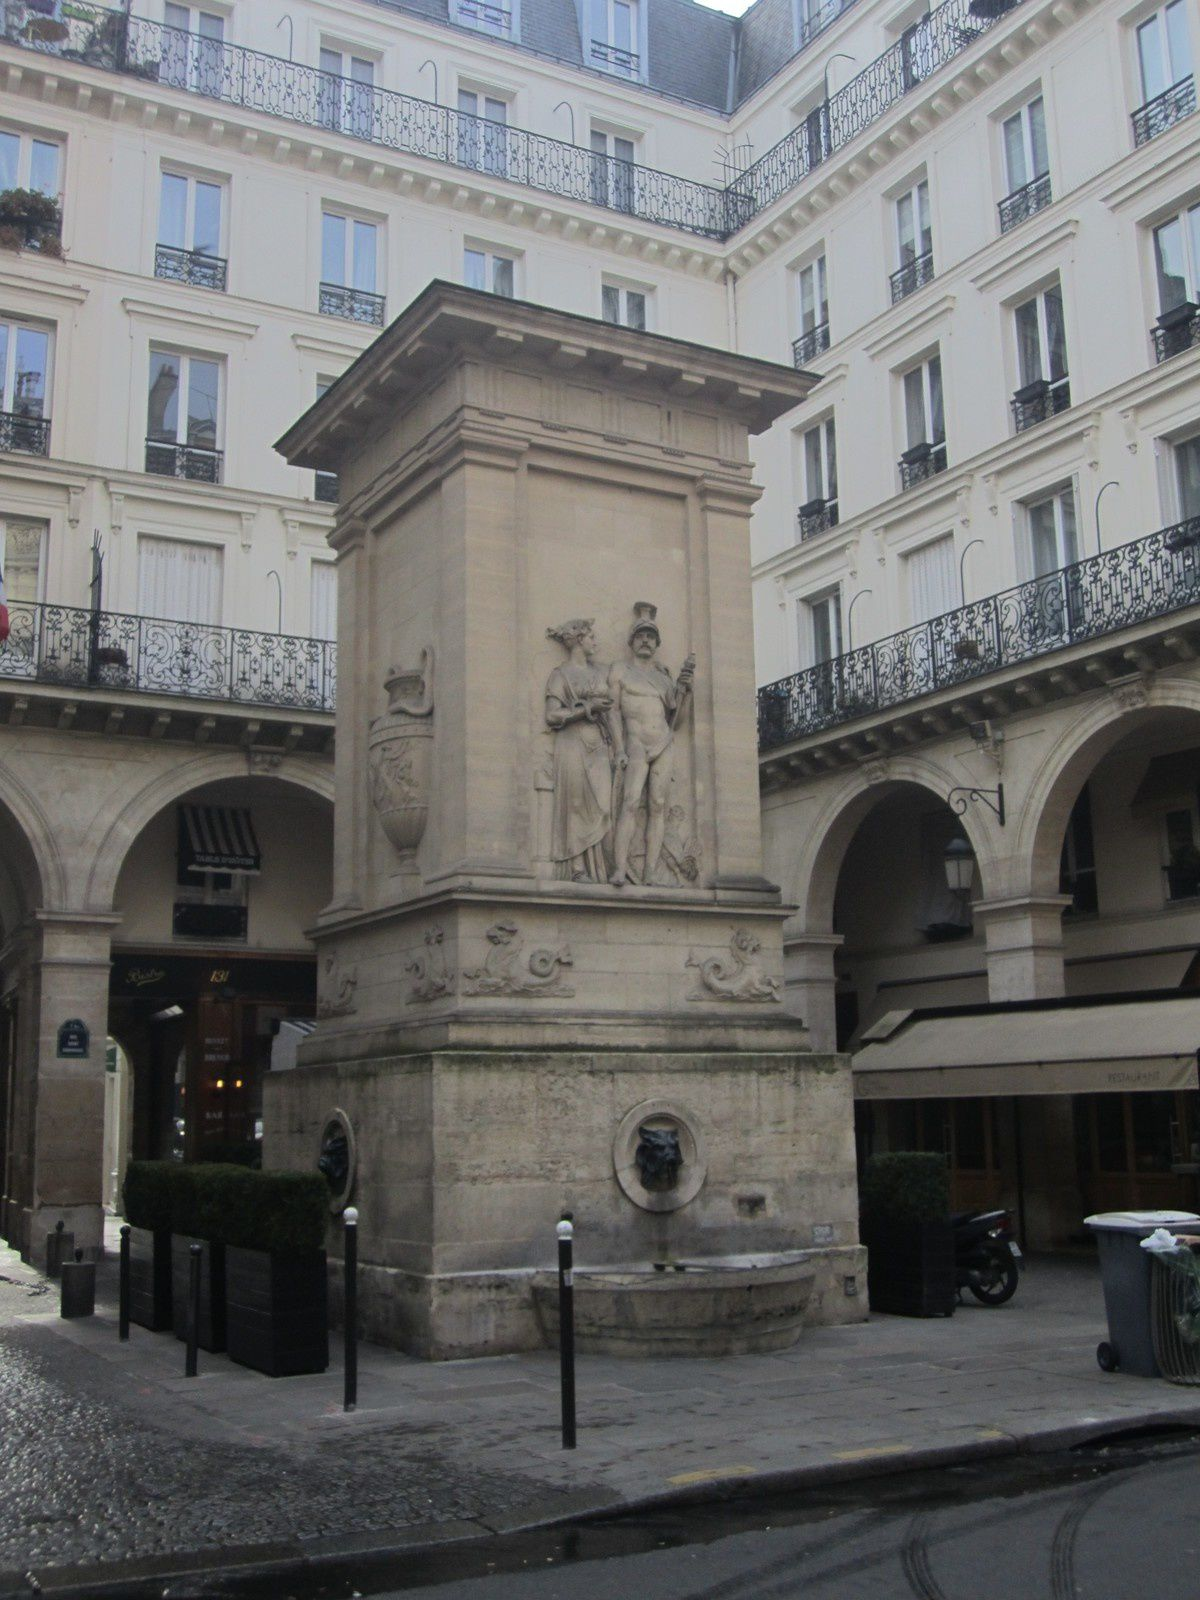 Paris, fontaine de Mars